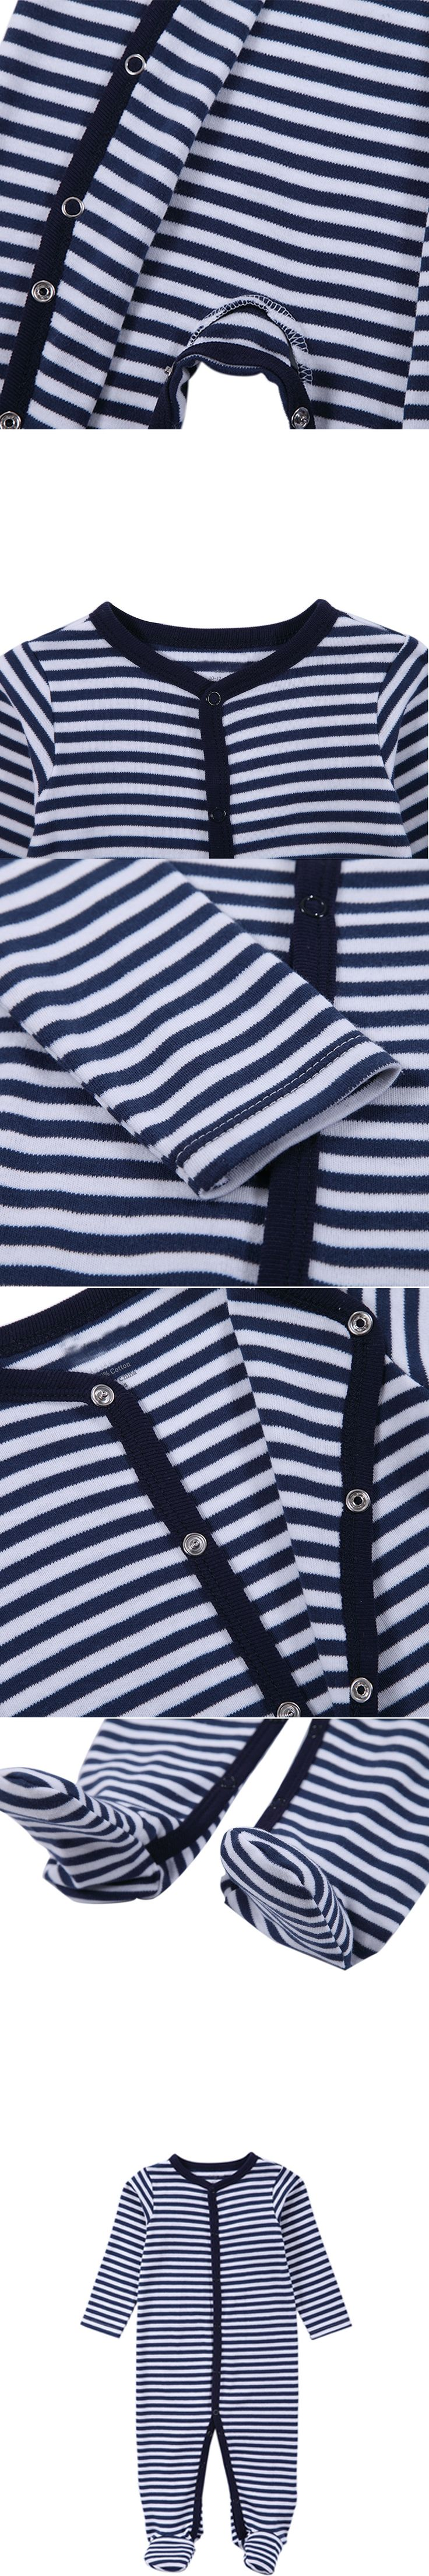 SexeMara Baby Boy Clothes Comfortable Baby Rompers Winter Thick Climbing Clothes Newborn 0-12 M Baby Clothes Unisex